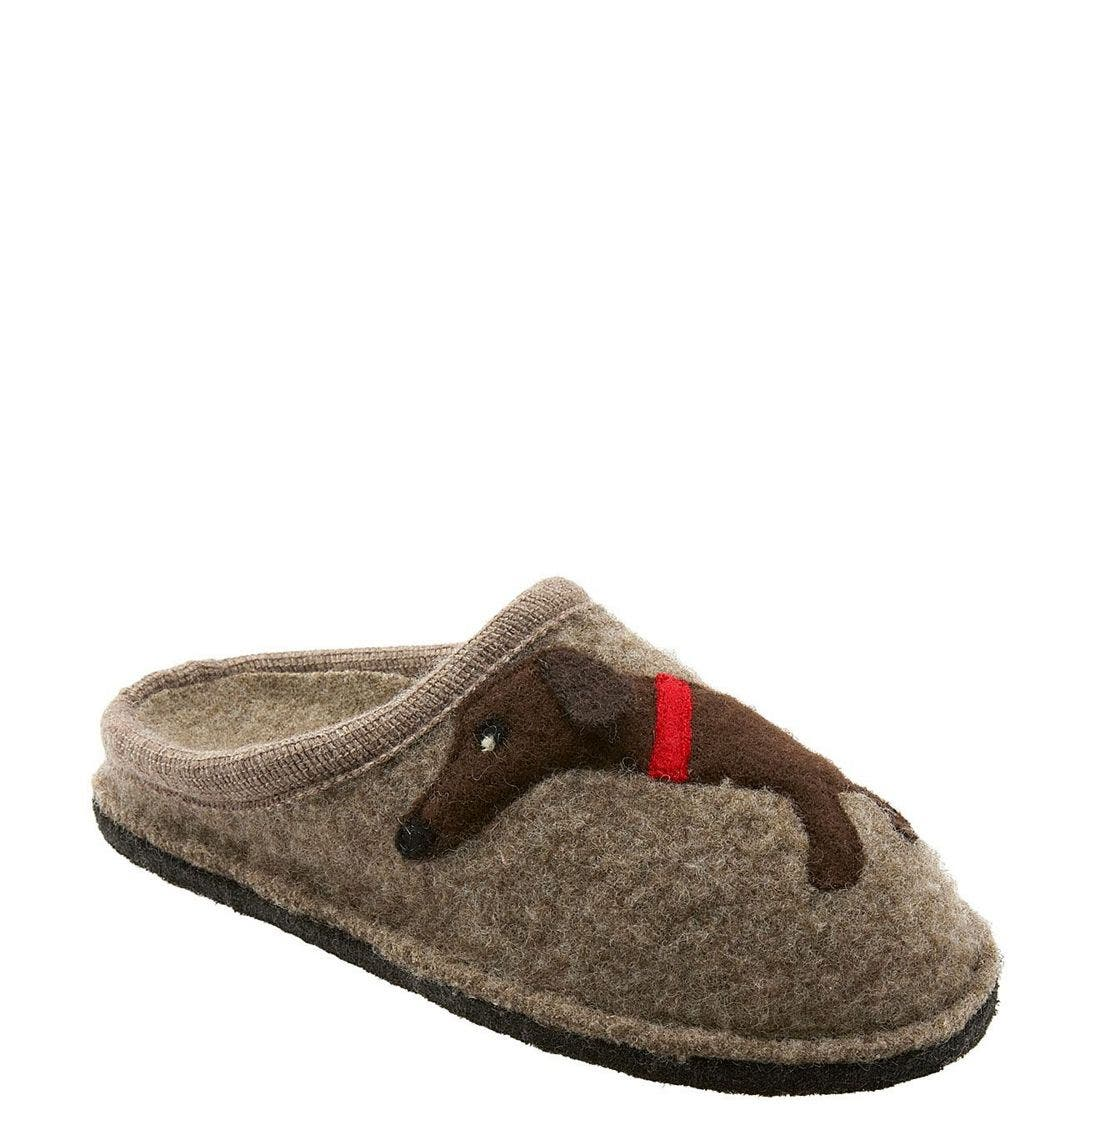 'Doggy' Slipper,                         Main,                         color, EARTH